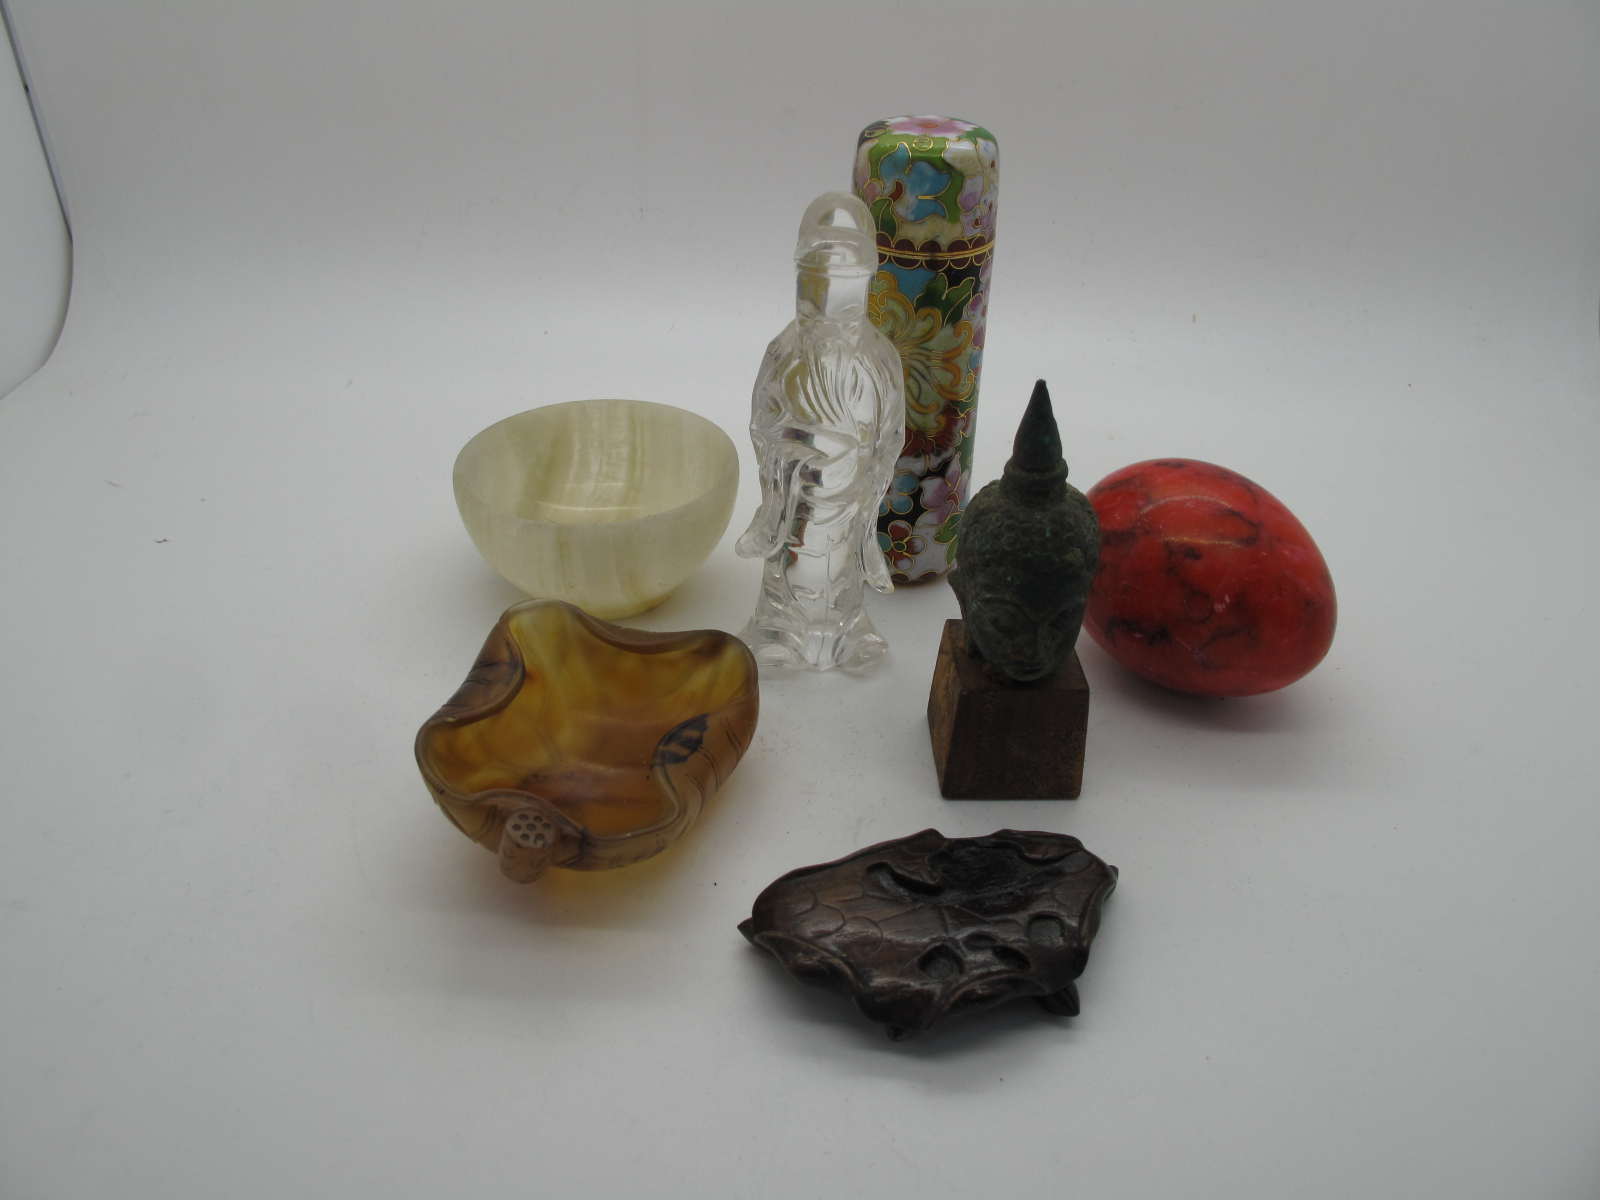 A Carved Mineral Figures of Animals, Chinese style glass figure of a bearded sage, etc:- One Tray - Image 5 of 6